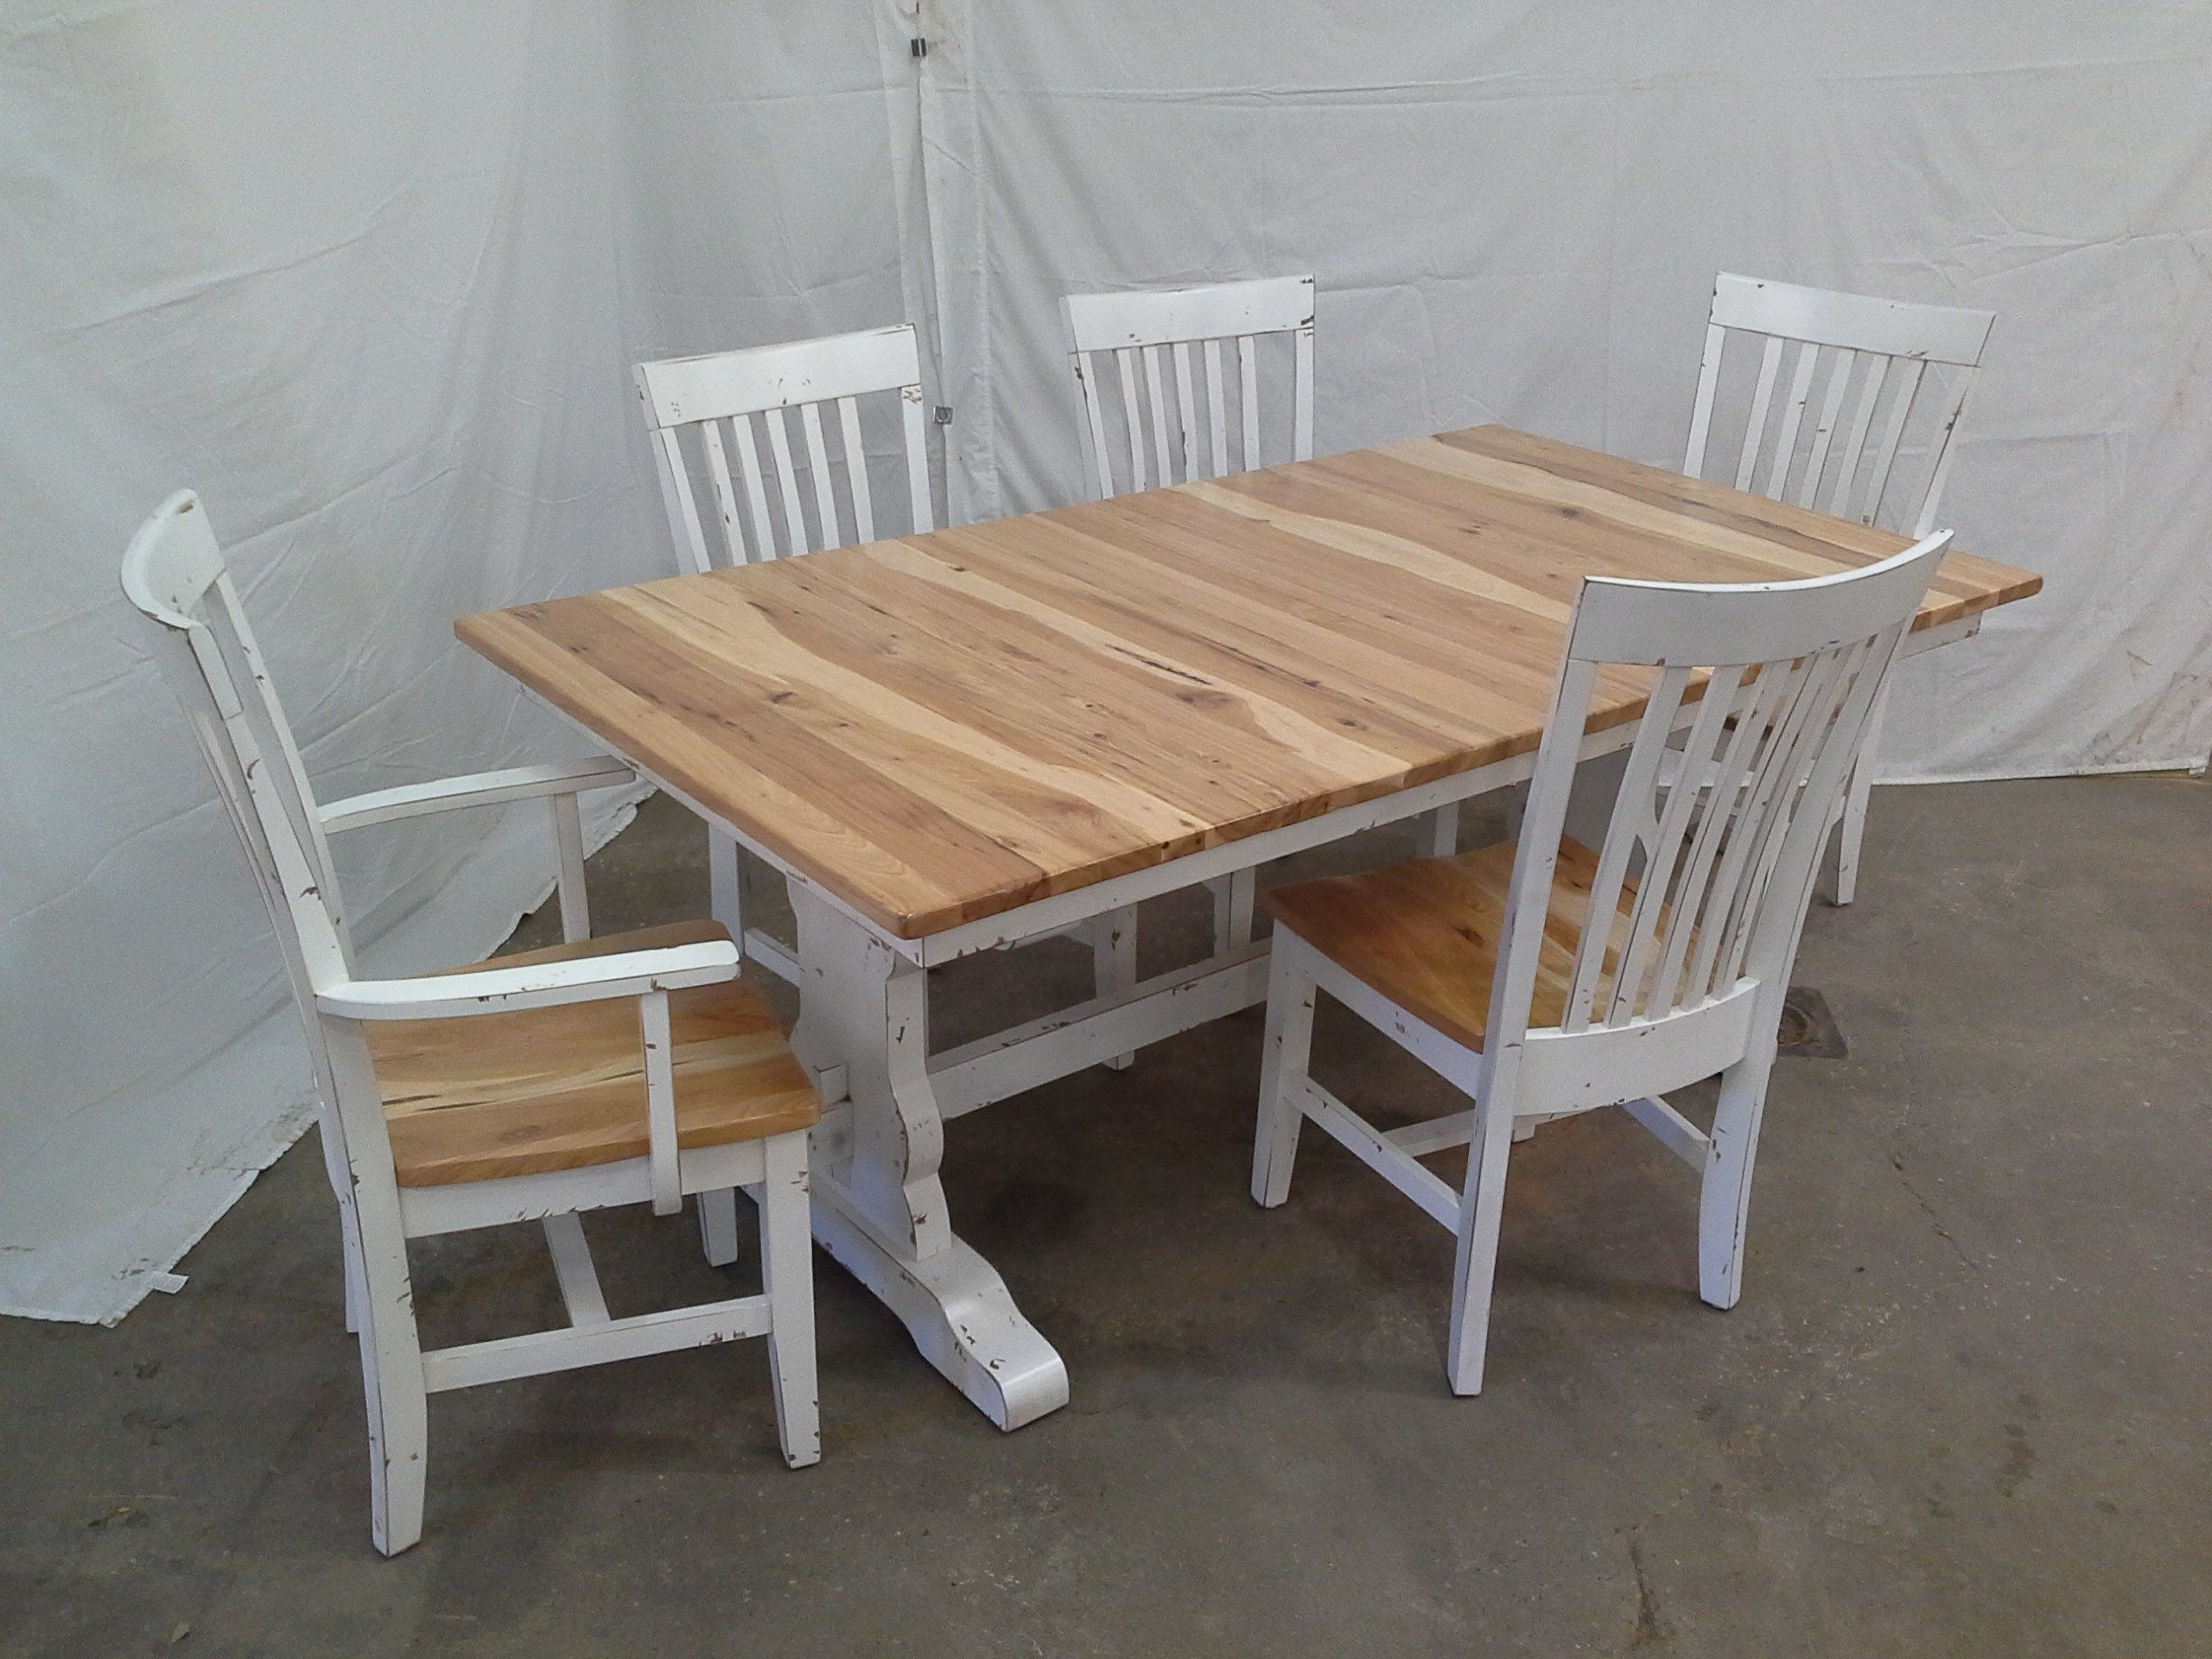 Favorite Rustic Furniture For Home Or Cabin Throughout Reinert 5 Piece Dining Sets (View 6 of 25)